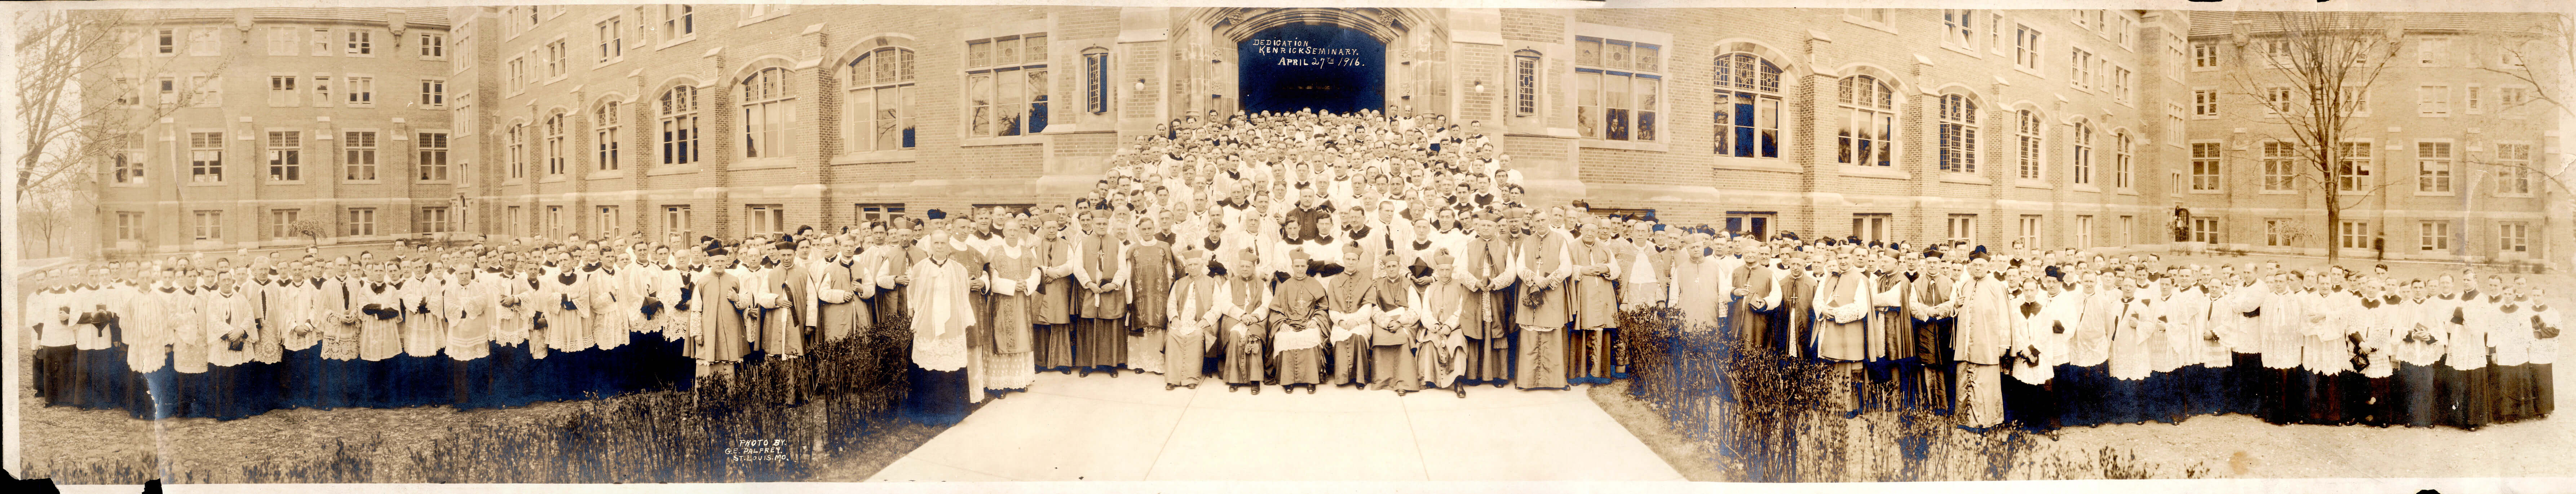 Historical_-_Photograph_-_Rolled_Panoramic_-_Dedication_of_Kenrick_Seminary_1916_April_27_Copy_2_of_2_50 (1)